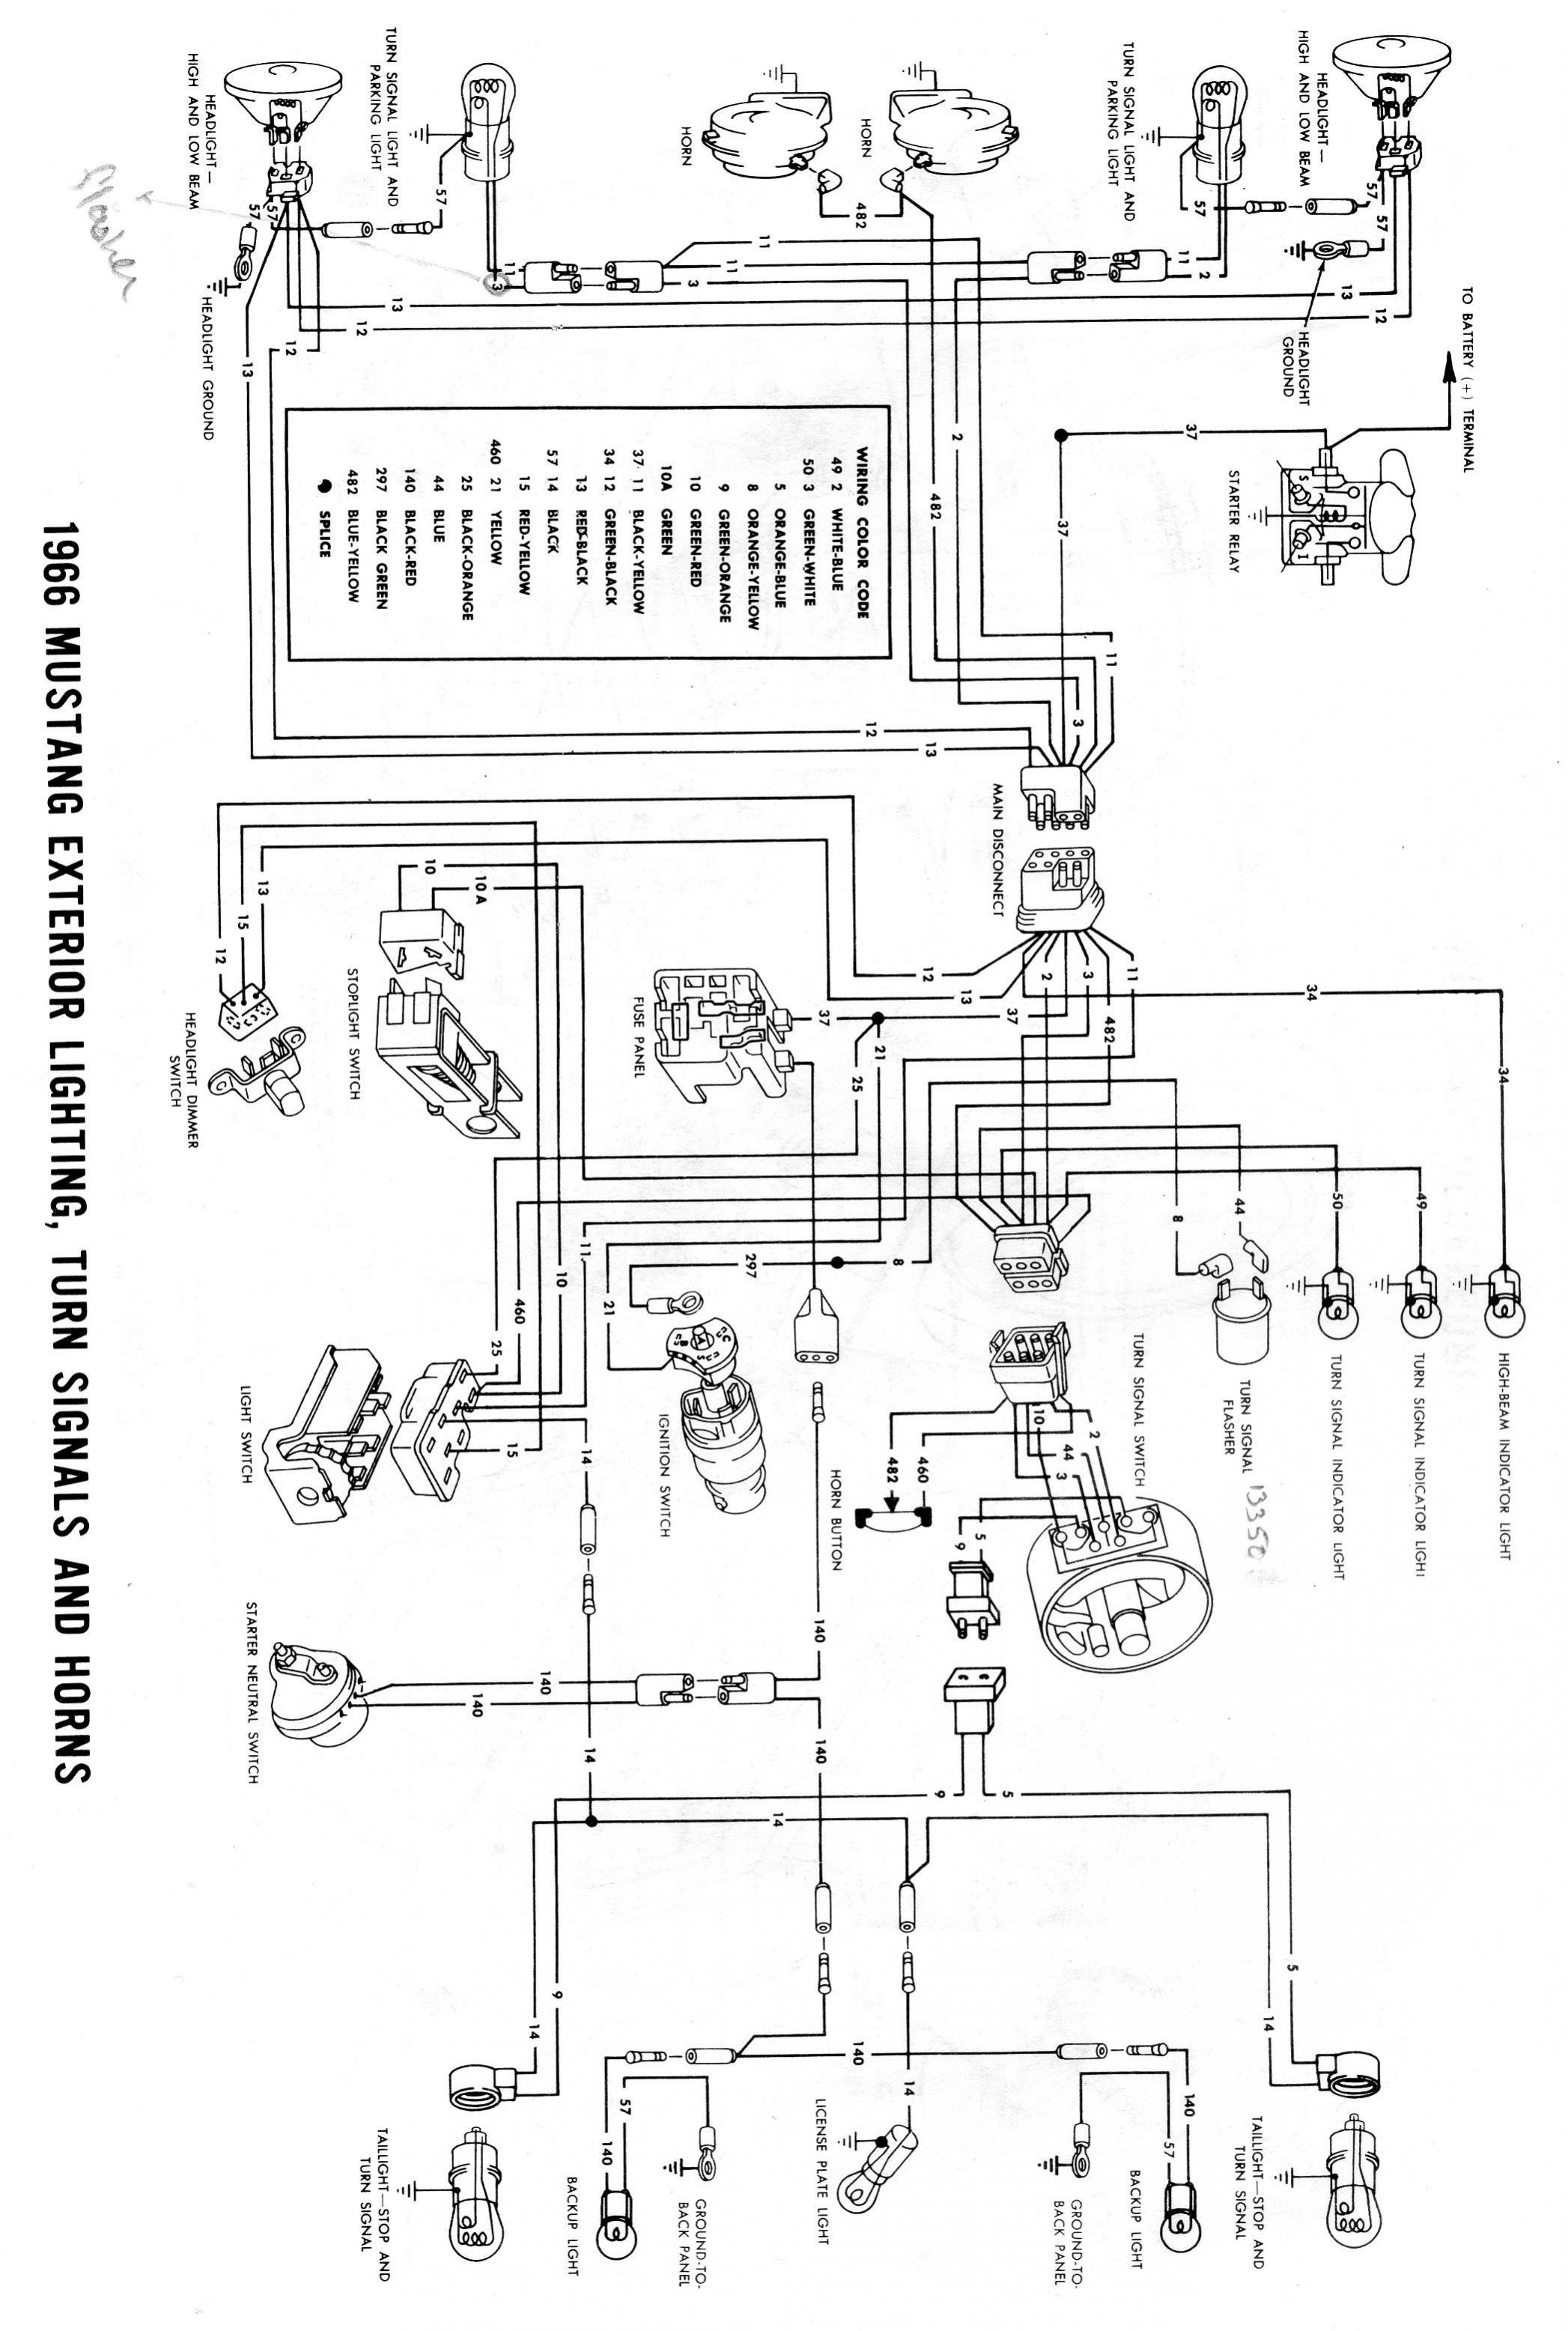 84 f150 wiring diagram trusted wiring diagrams u2022 rh sivamuni com